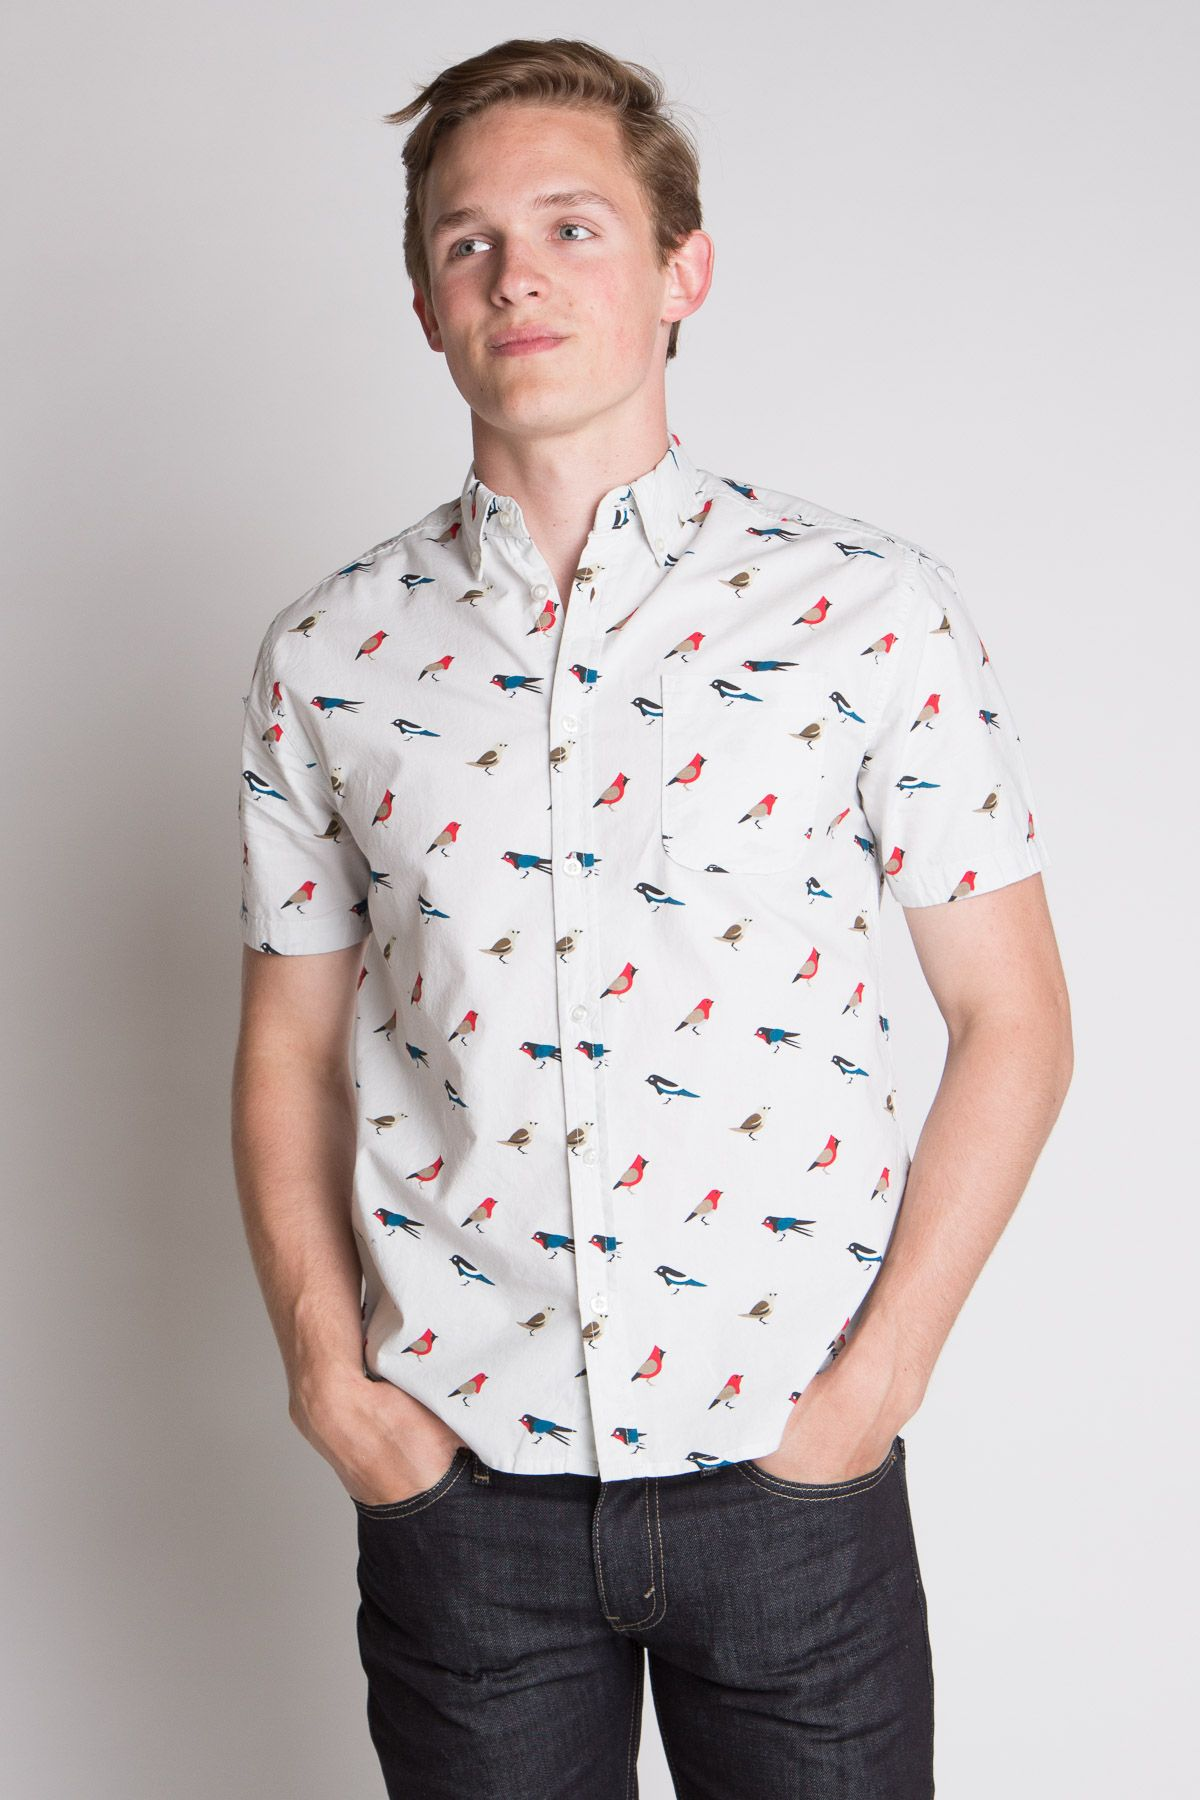 3dd7dbe8b9 Multi Colored Birds Icon-Printed Woven Shirt - Ragstock Mens Button Up, Button  Up